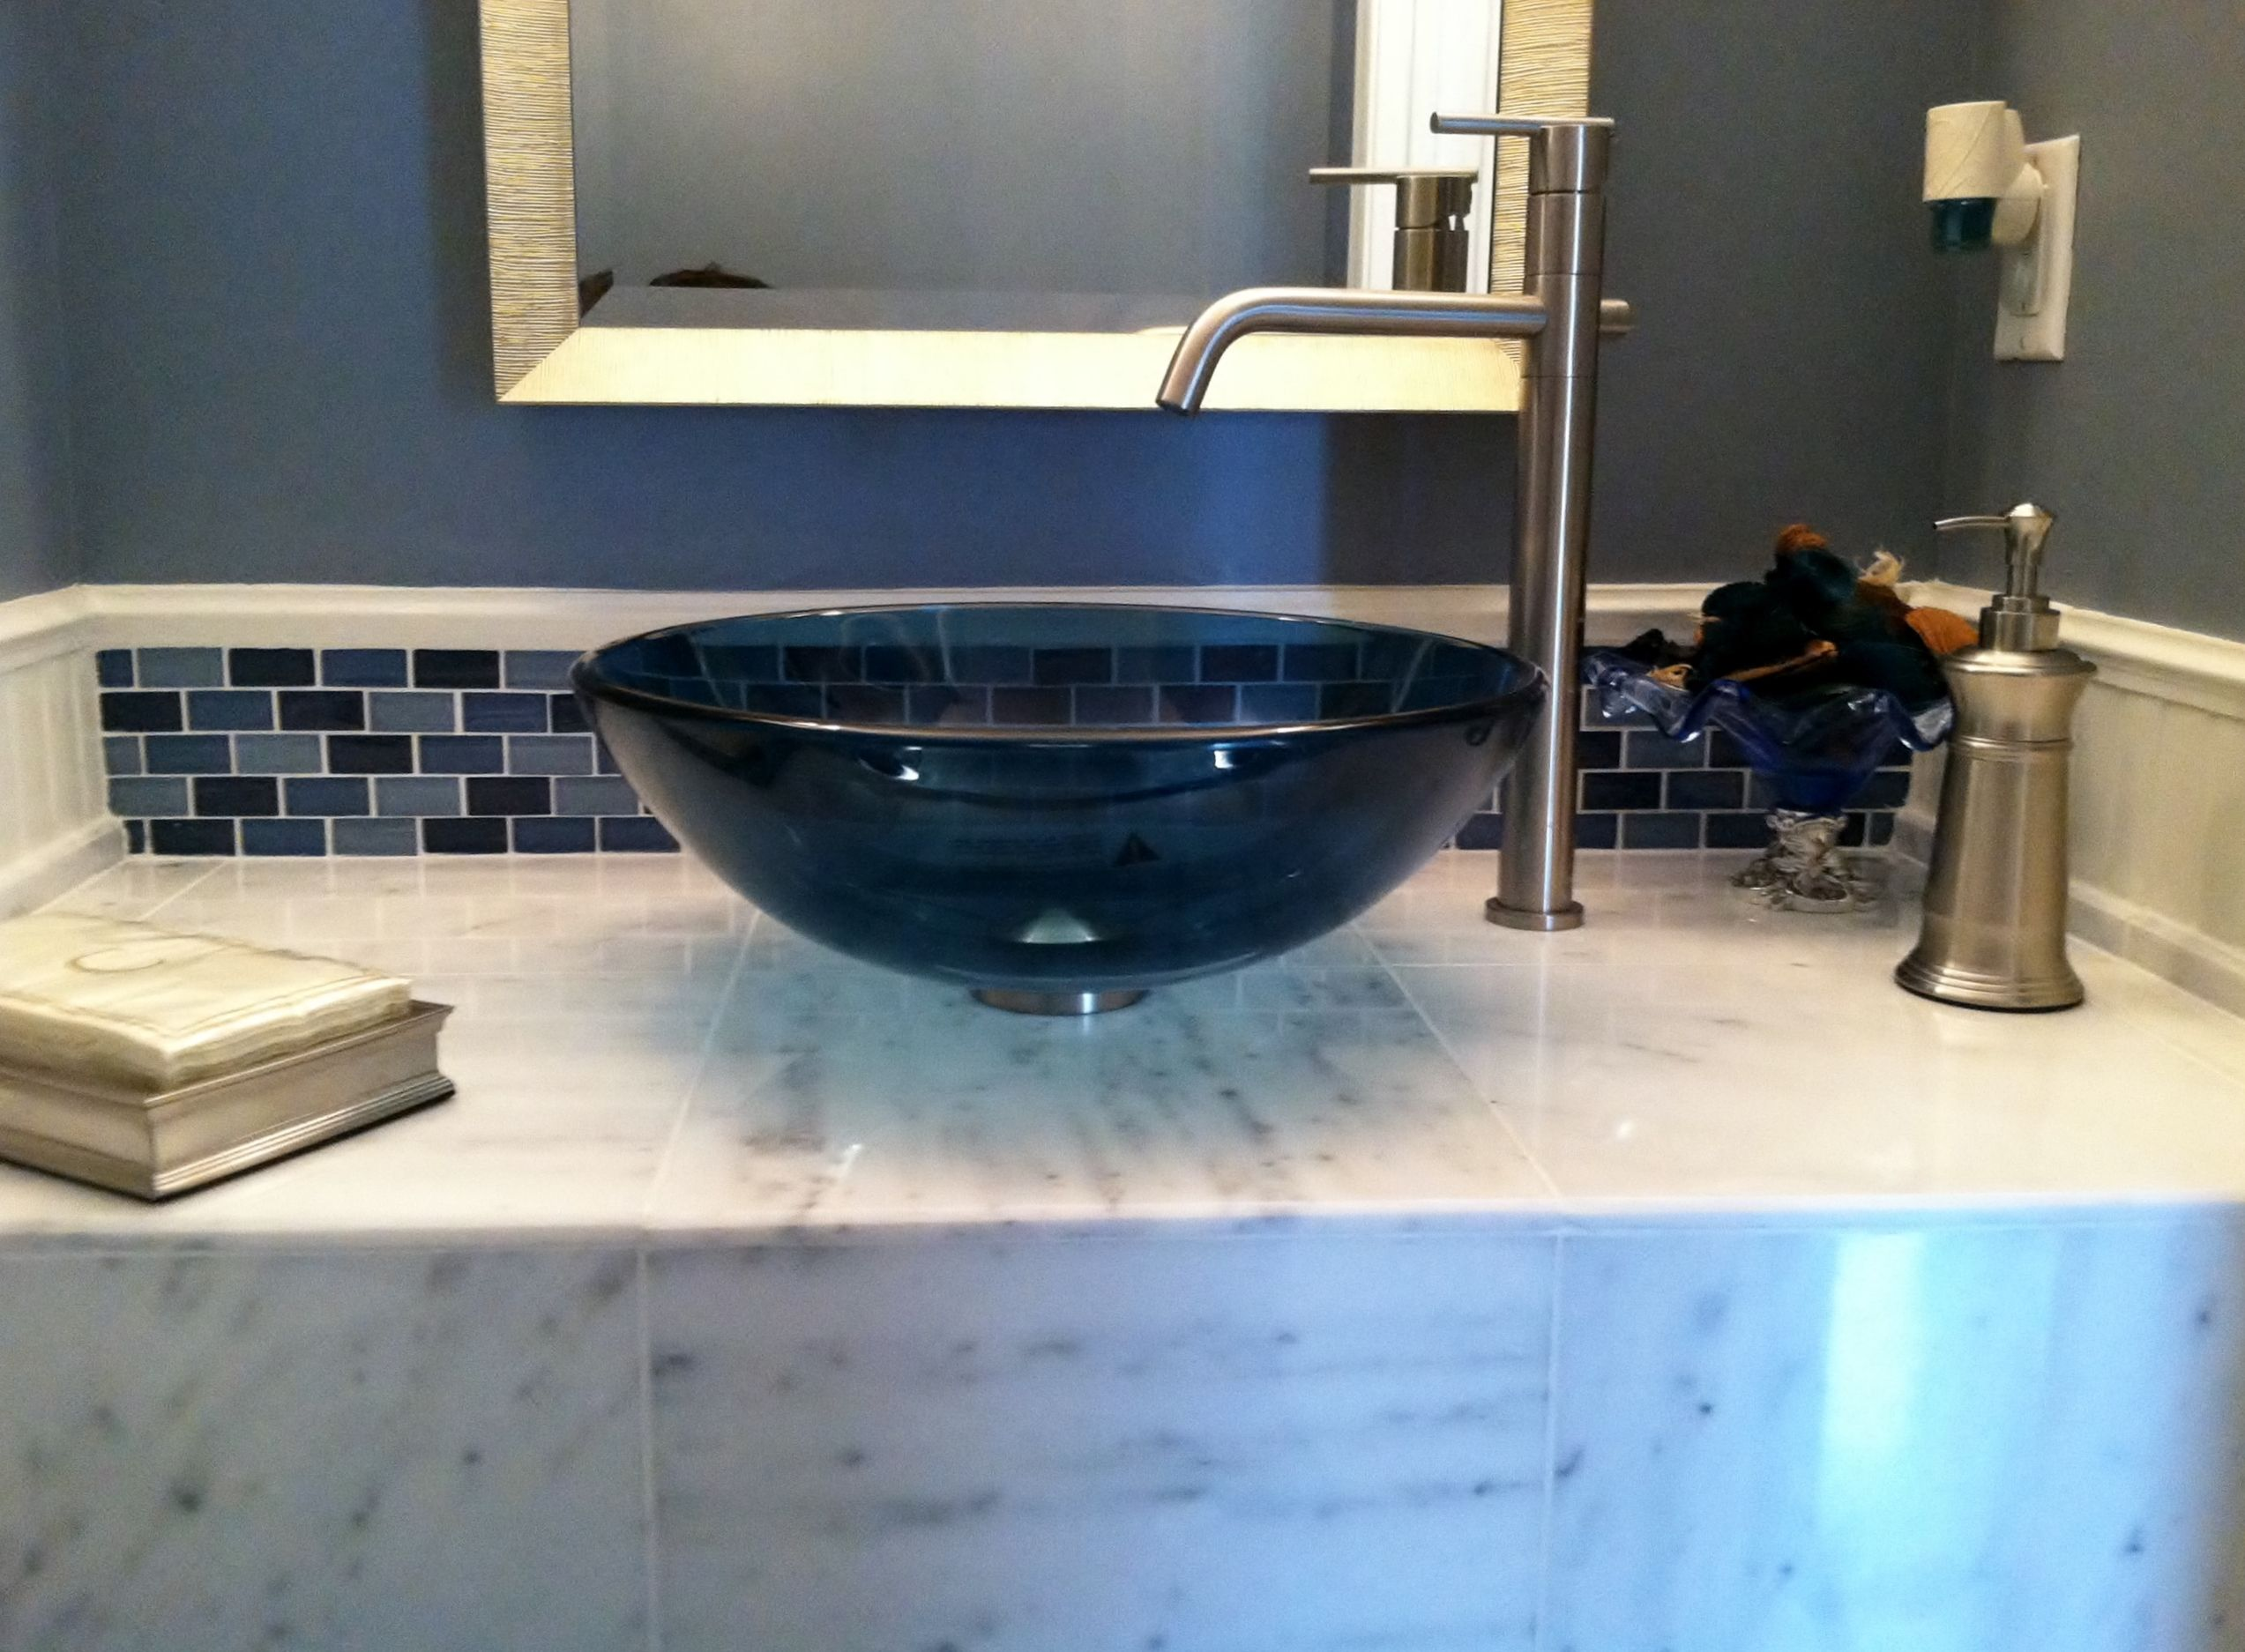 Glass tile backsplash accent with blue glass sink custom marble this glass tile backsplash accent with blue glass sink the custom marble vanity creates an elegant sophisticated but very fun modern bathroom dailygadgetfo Images